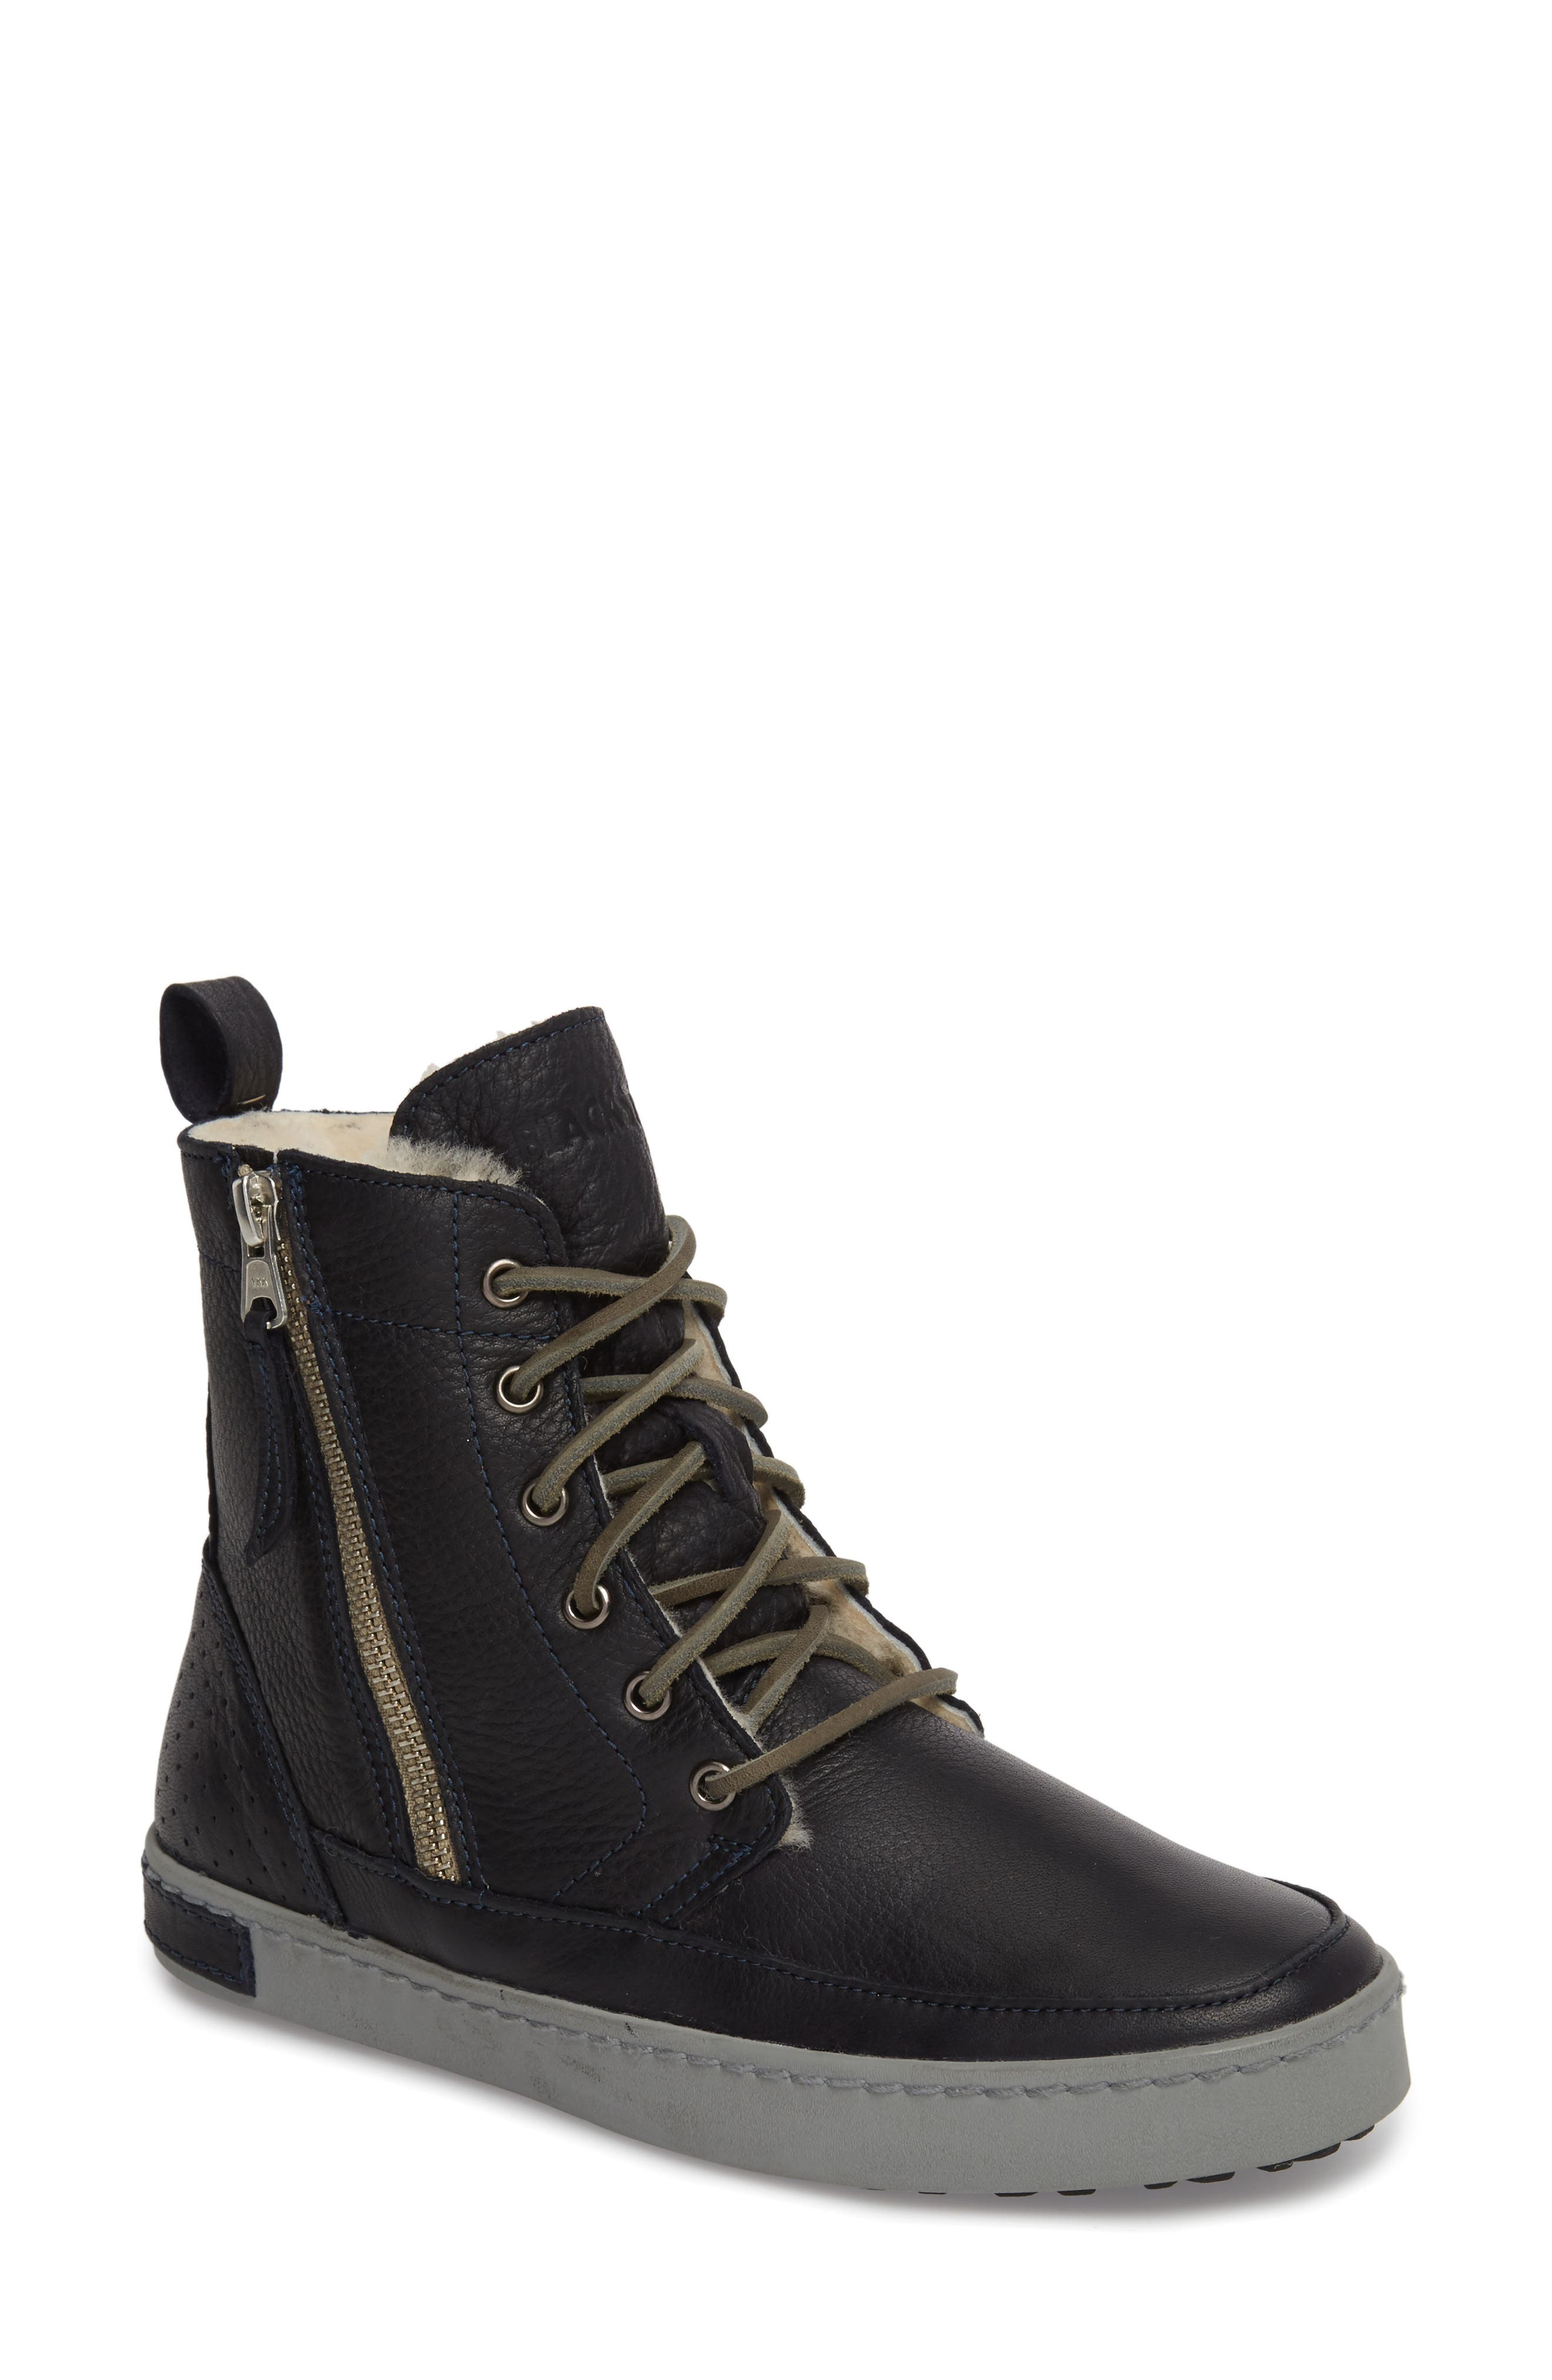 'CW96' Genuine Shearling Lined Sneaker Boot,                         Main,                         color, Dark Indigo Leather